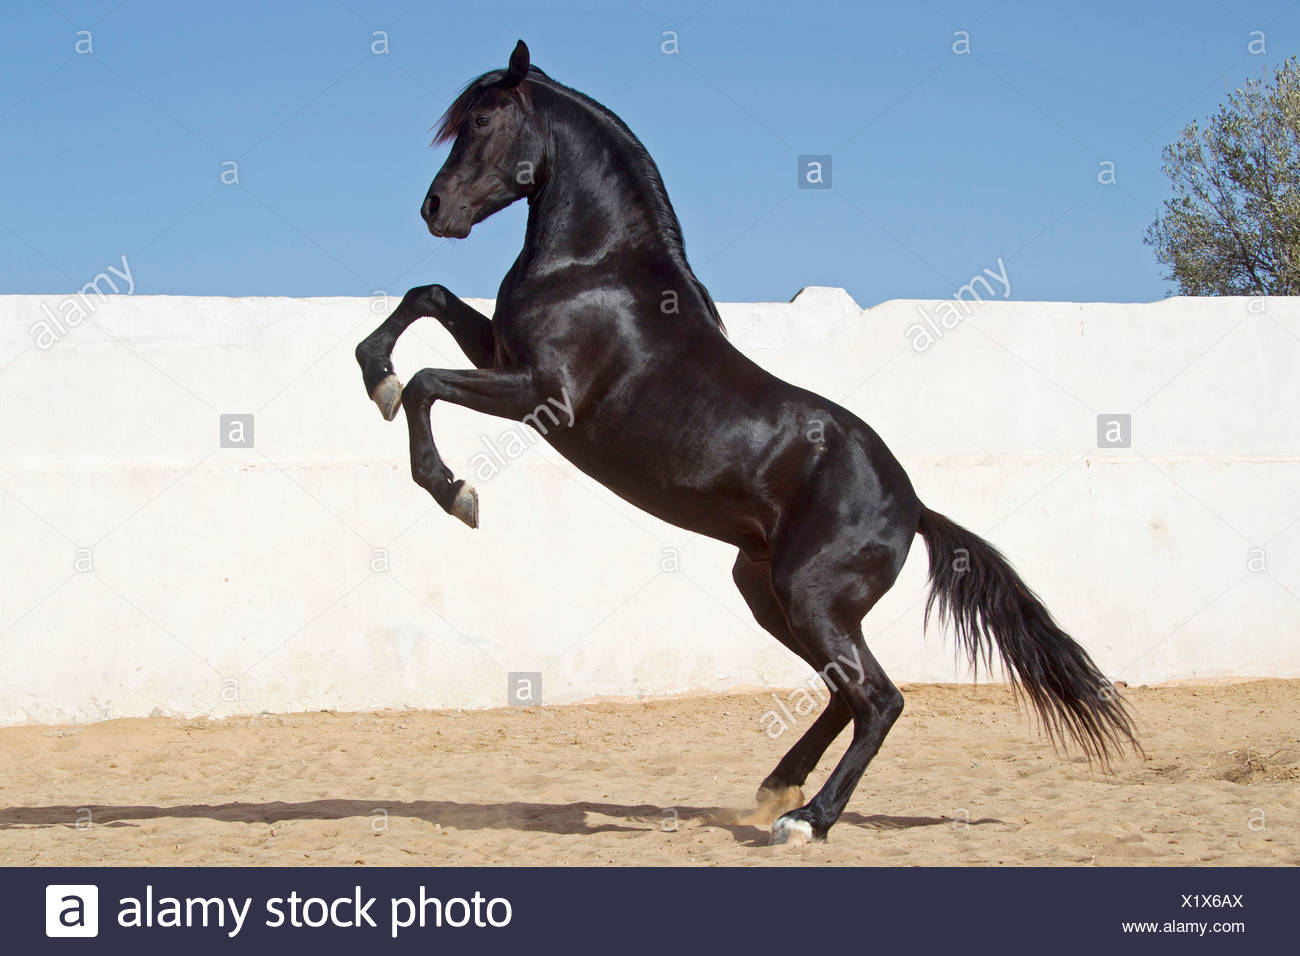 Thoroughbred Arabian Horse Black Stallion High Resolution Stock Photography And Images Alamy